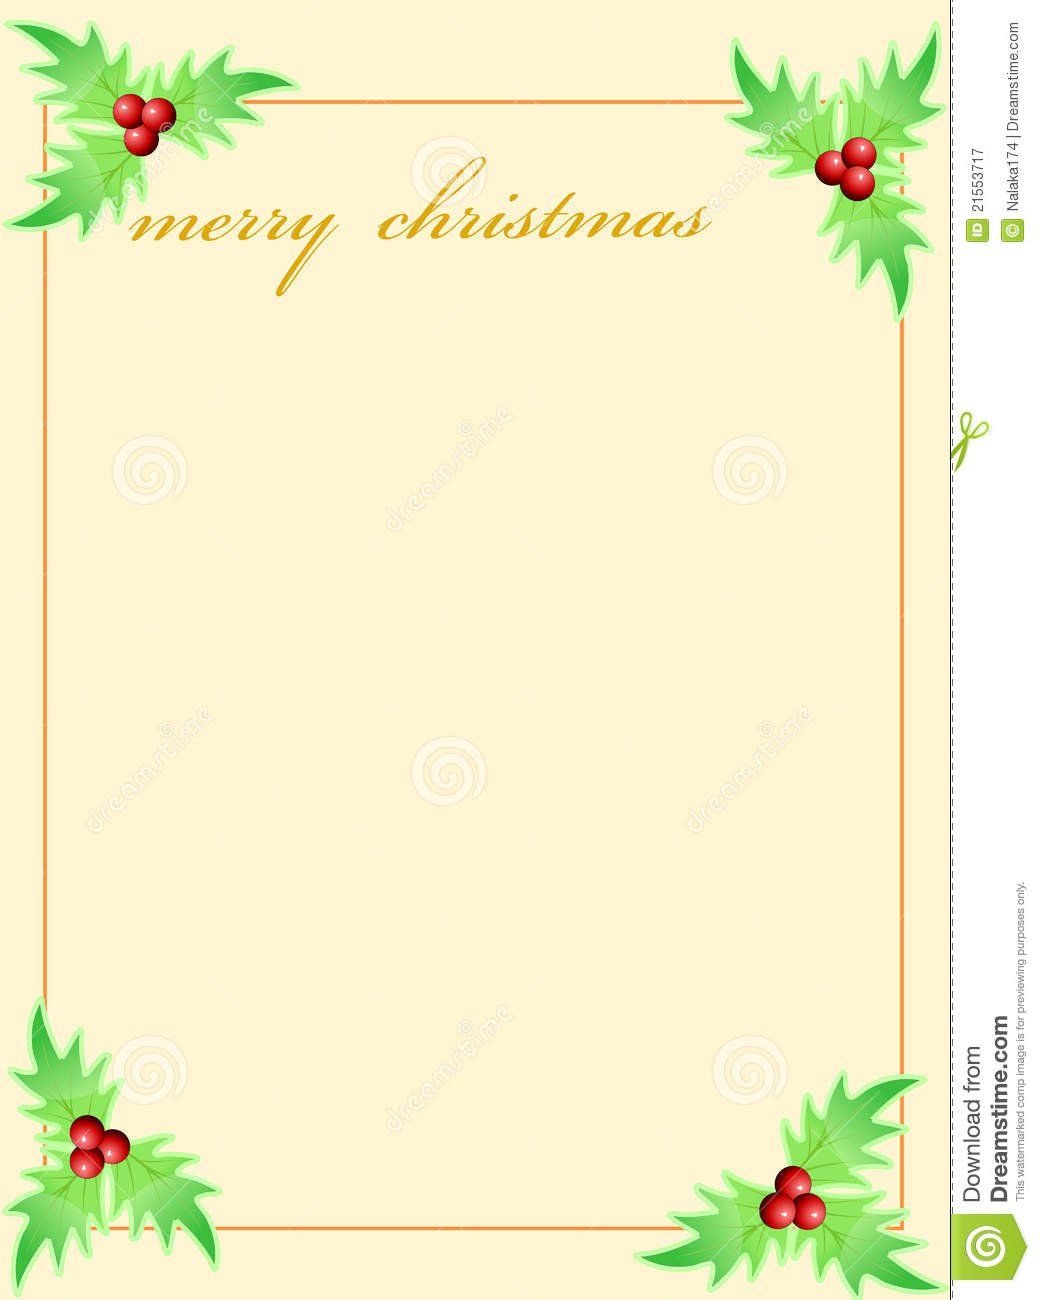 Christmas holiday invitation templates free for Free christmas invitation templates